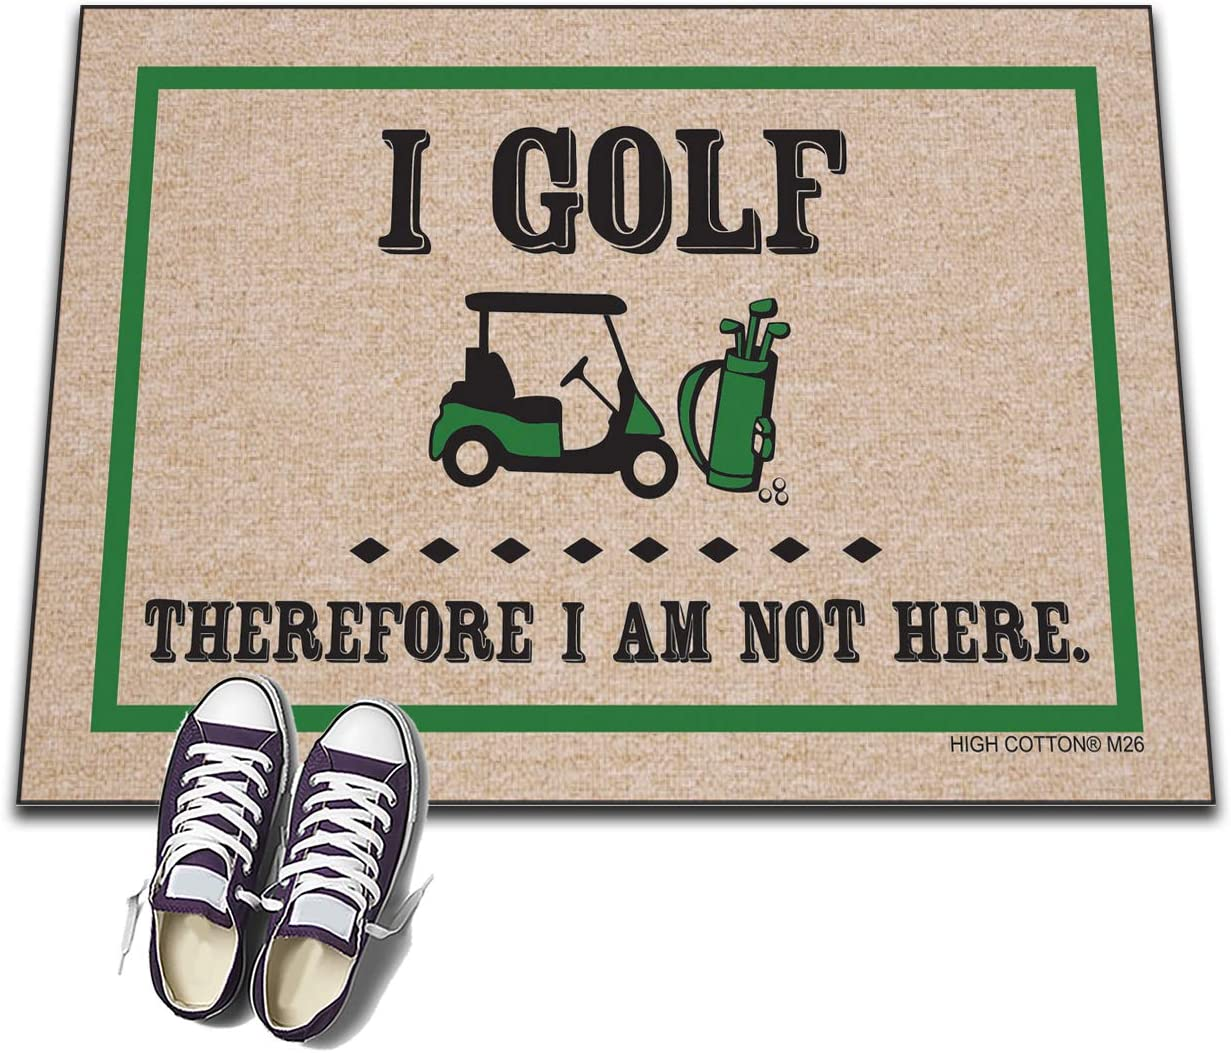 Golf Themed Doormat - I Golf Therefore I am Not Here